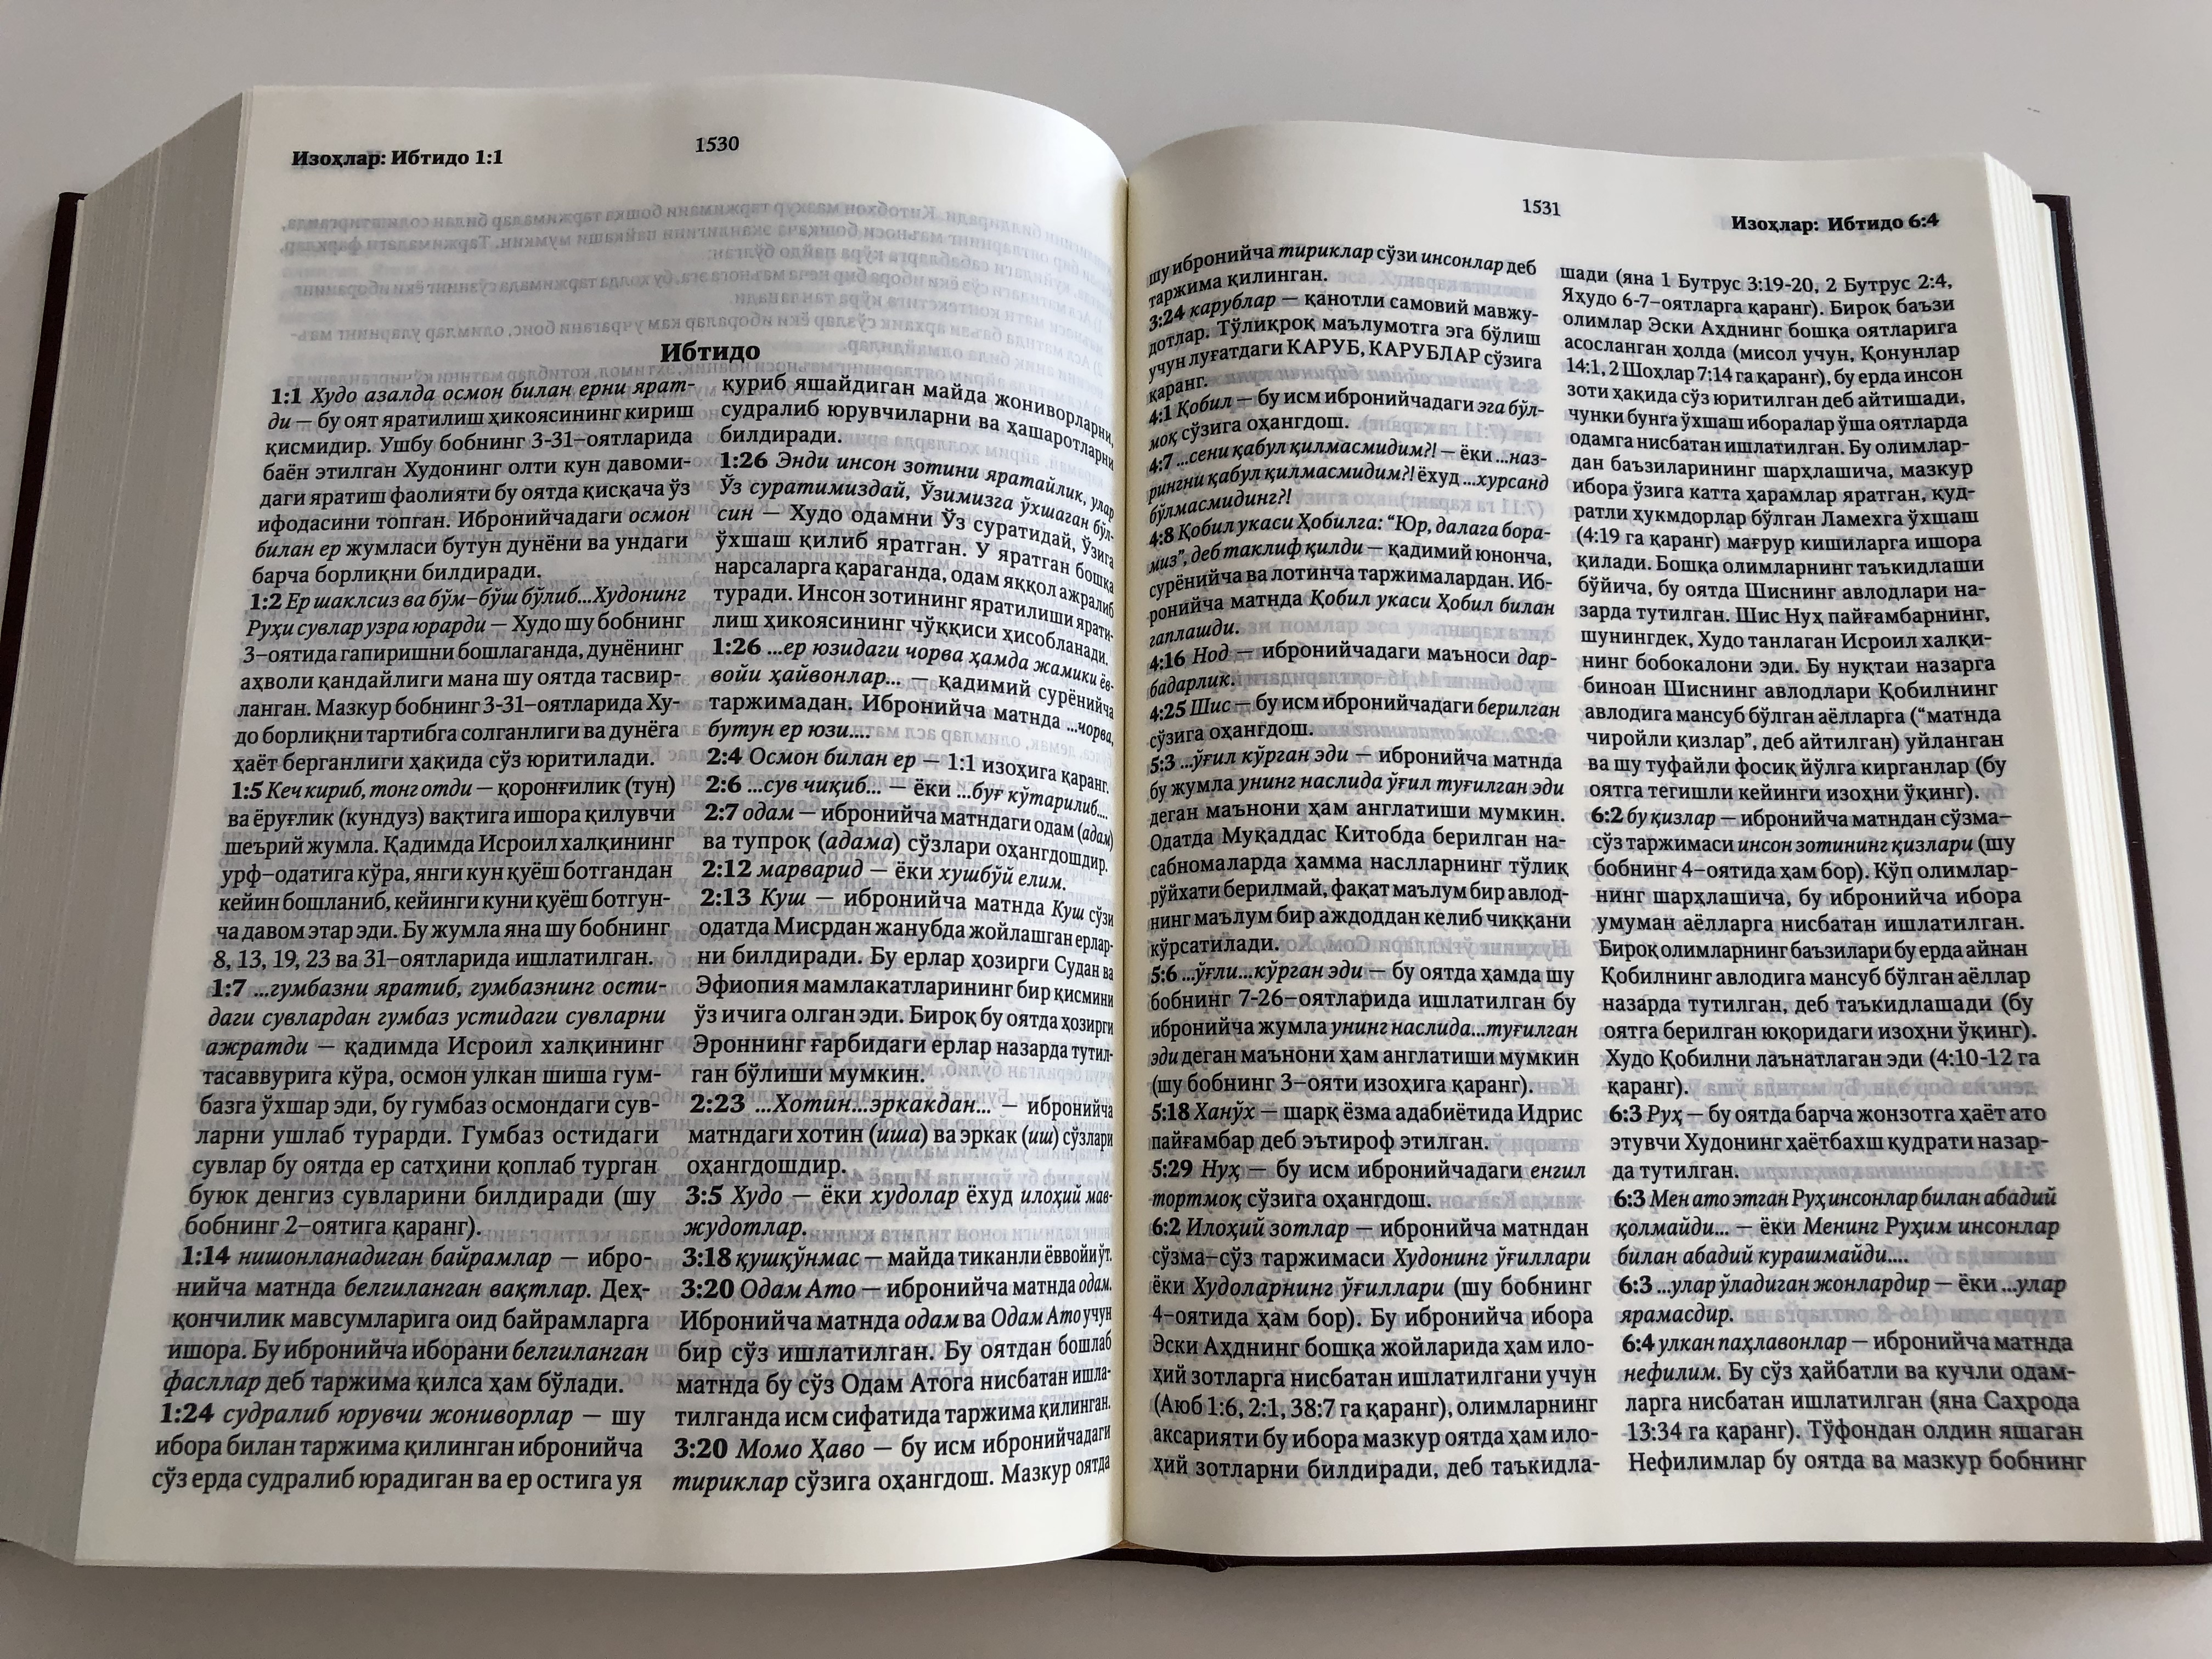 -uzbek-language-holy-bible-with-commentaries-and-nt-parallel-passage-tables-o-zbekcha-cyrillic-script-hardcover-2018-19-.jpg